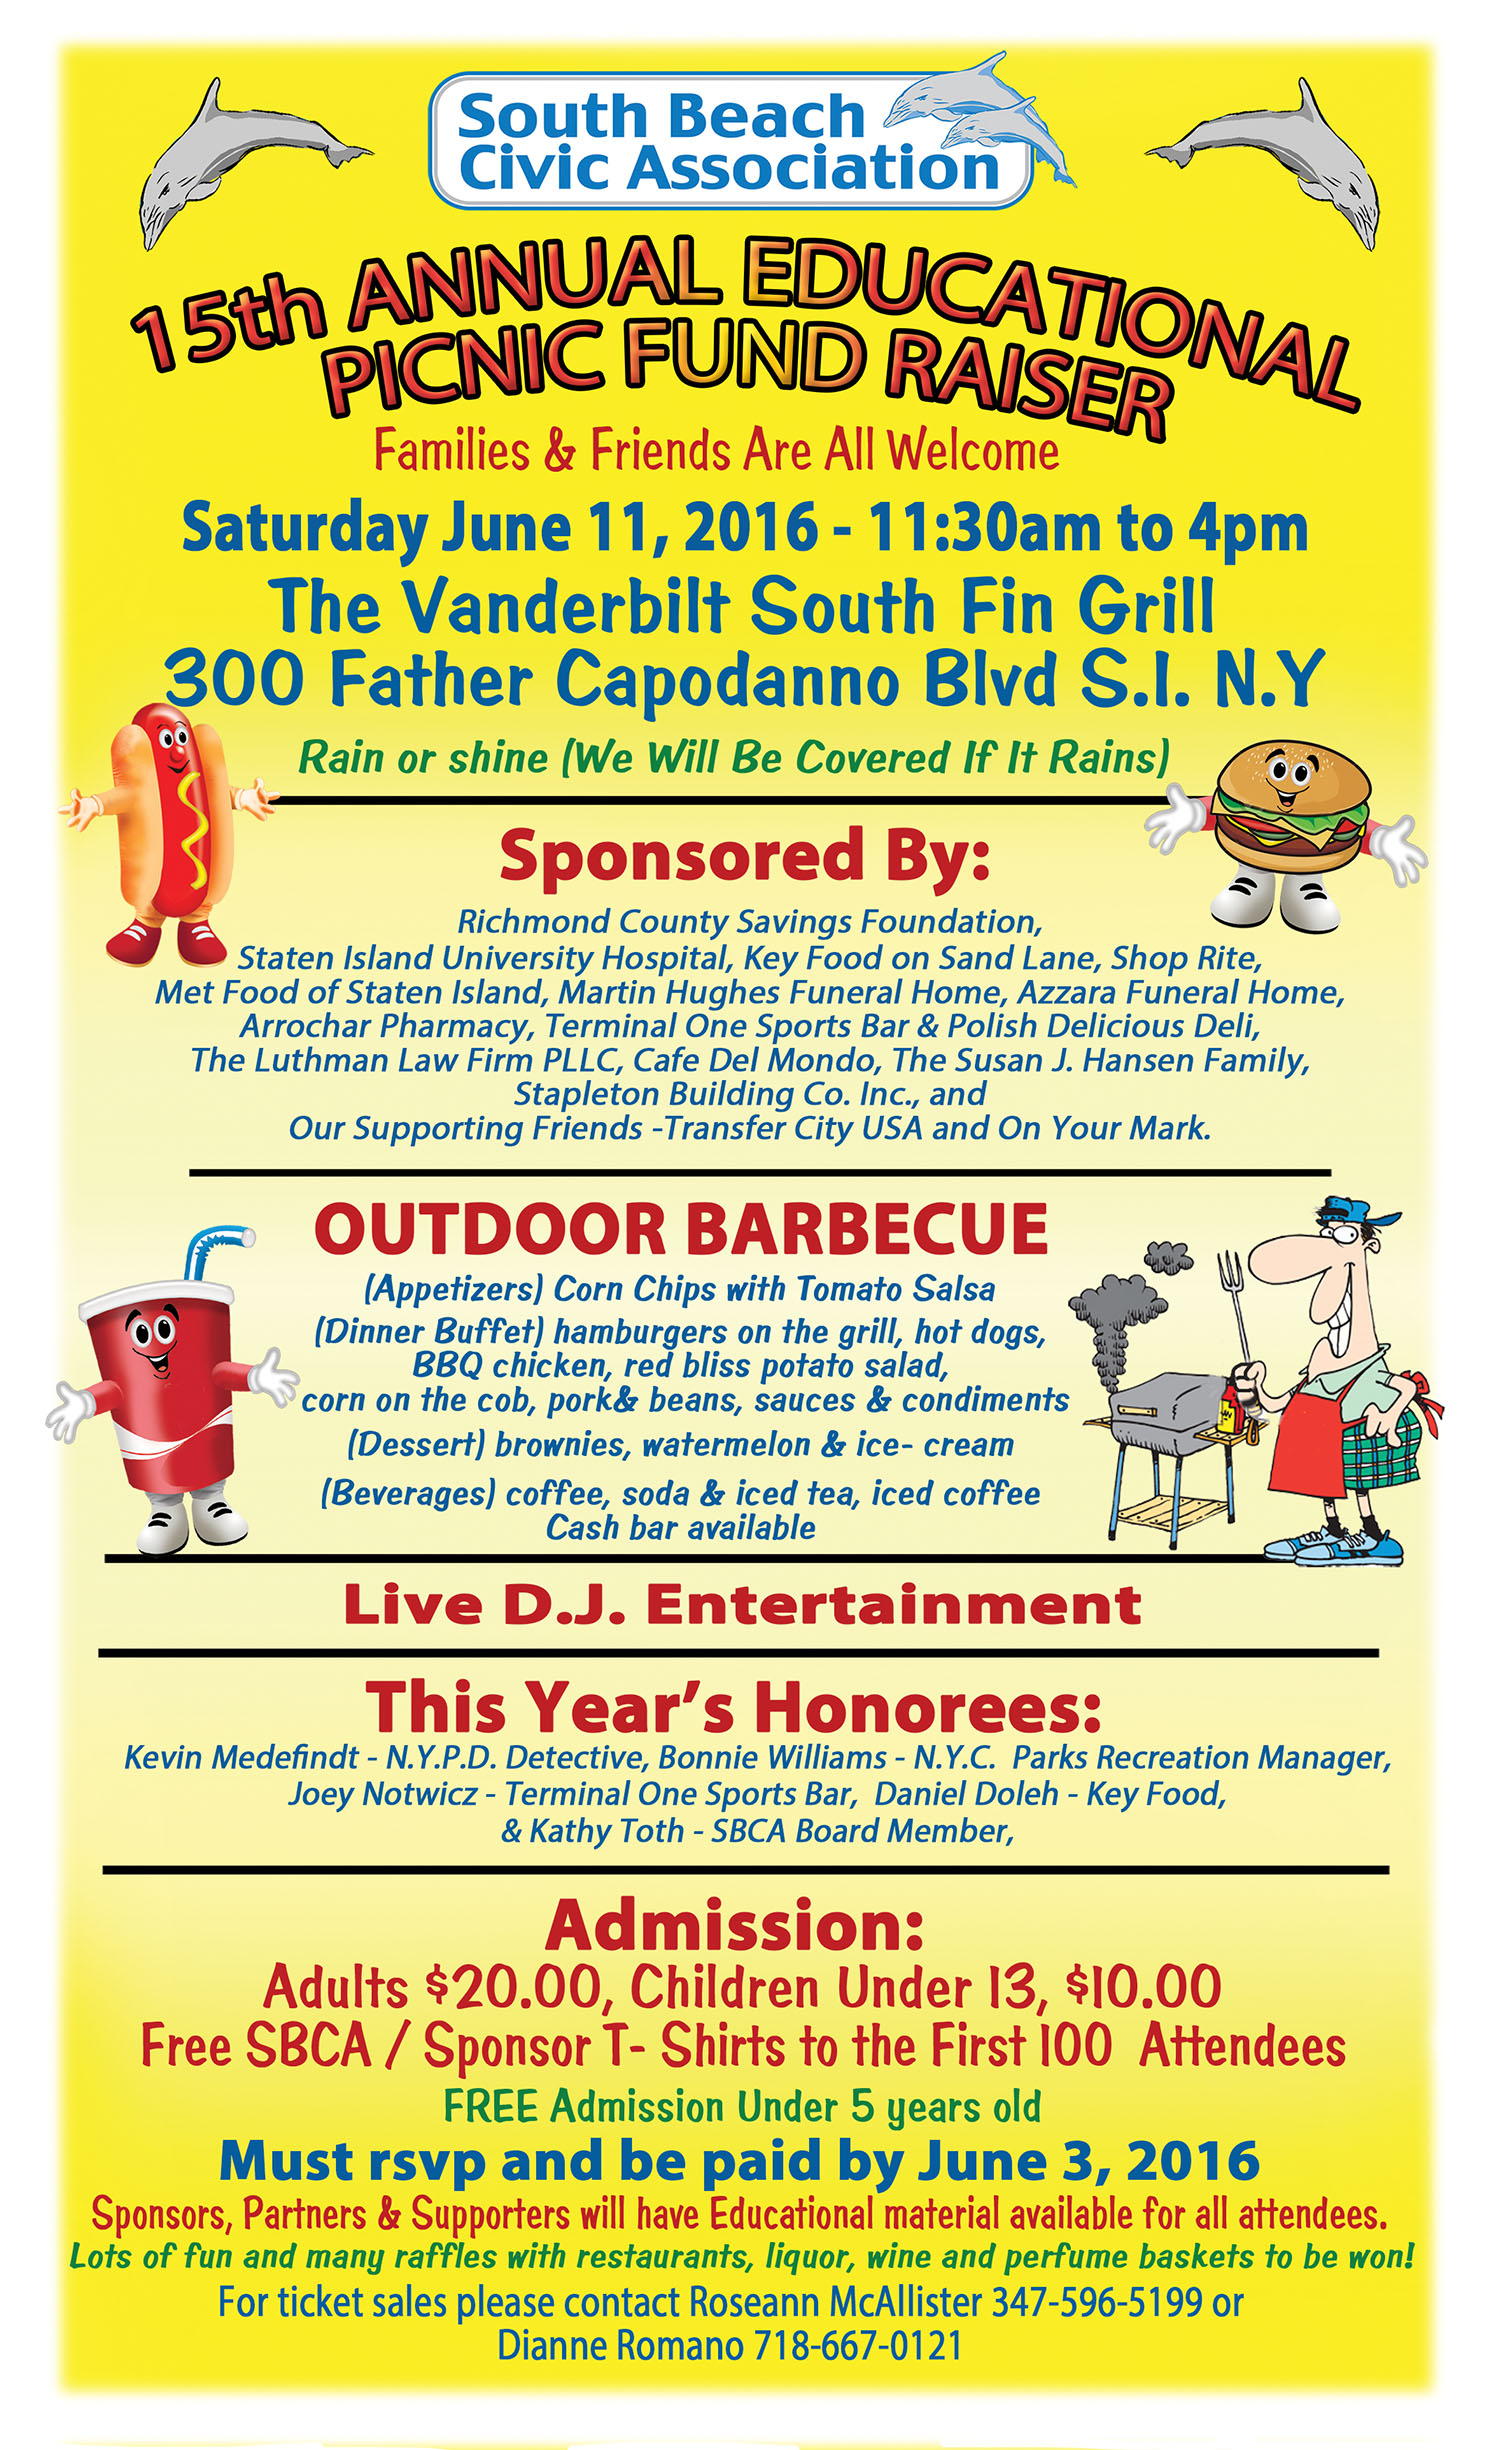 save the date     15th annual educational picnic